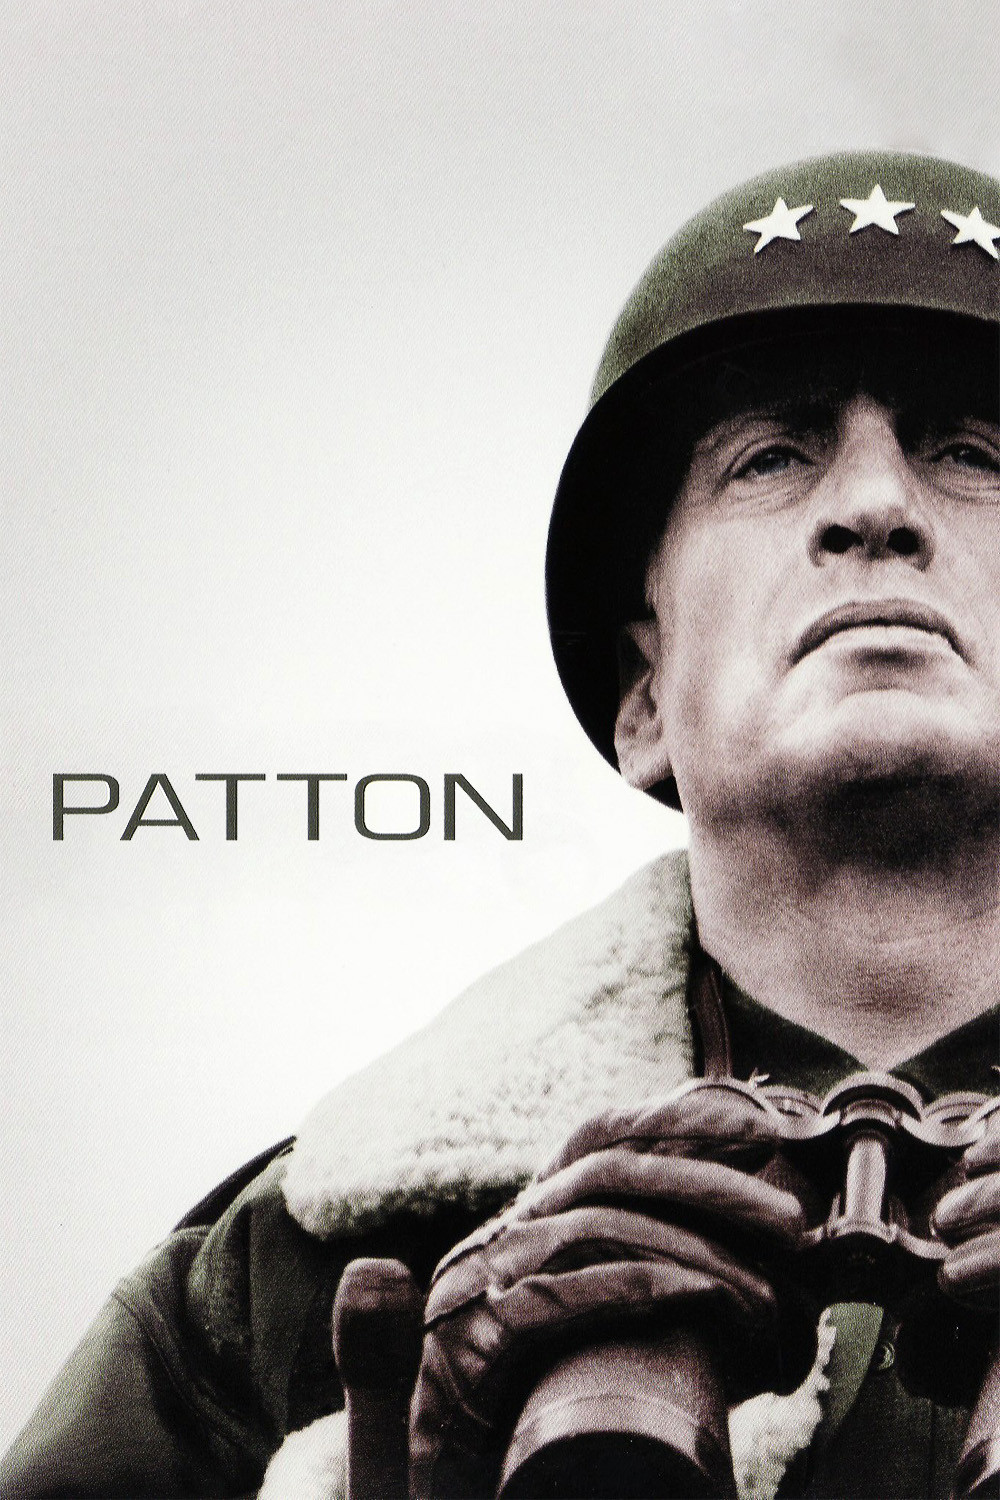 Patton monologue